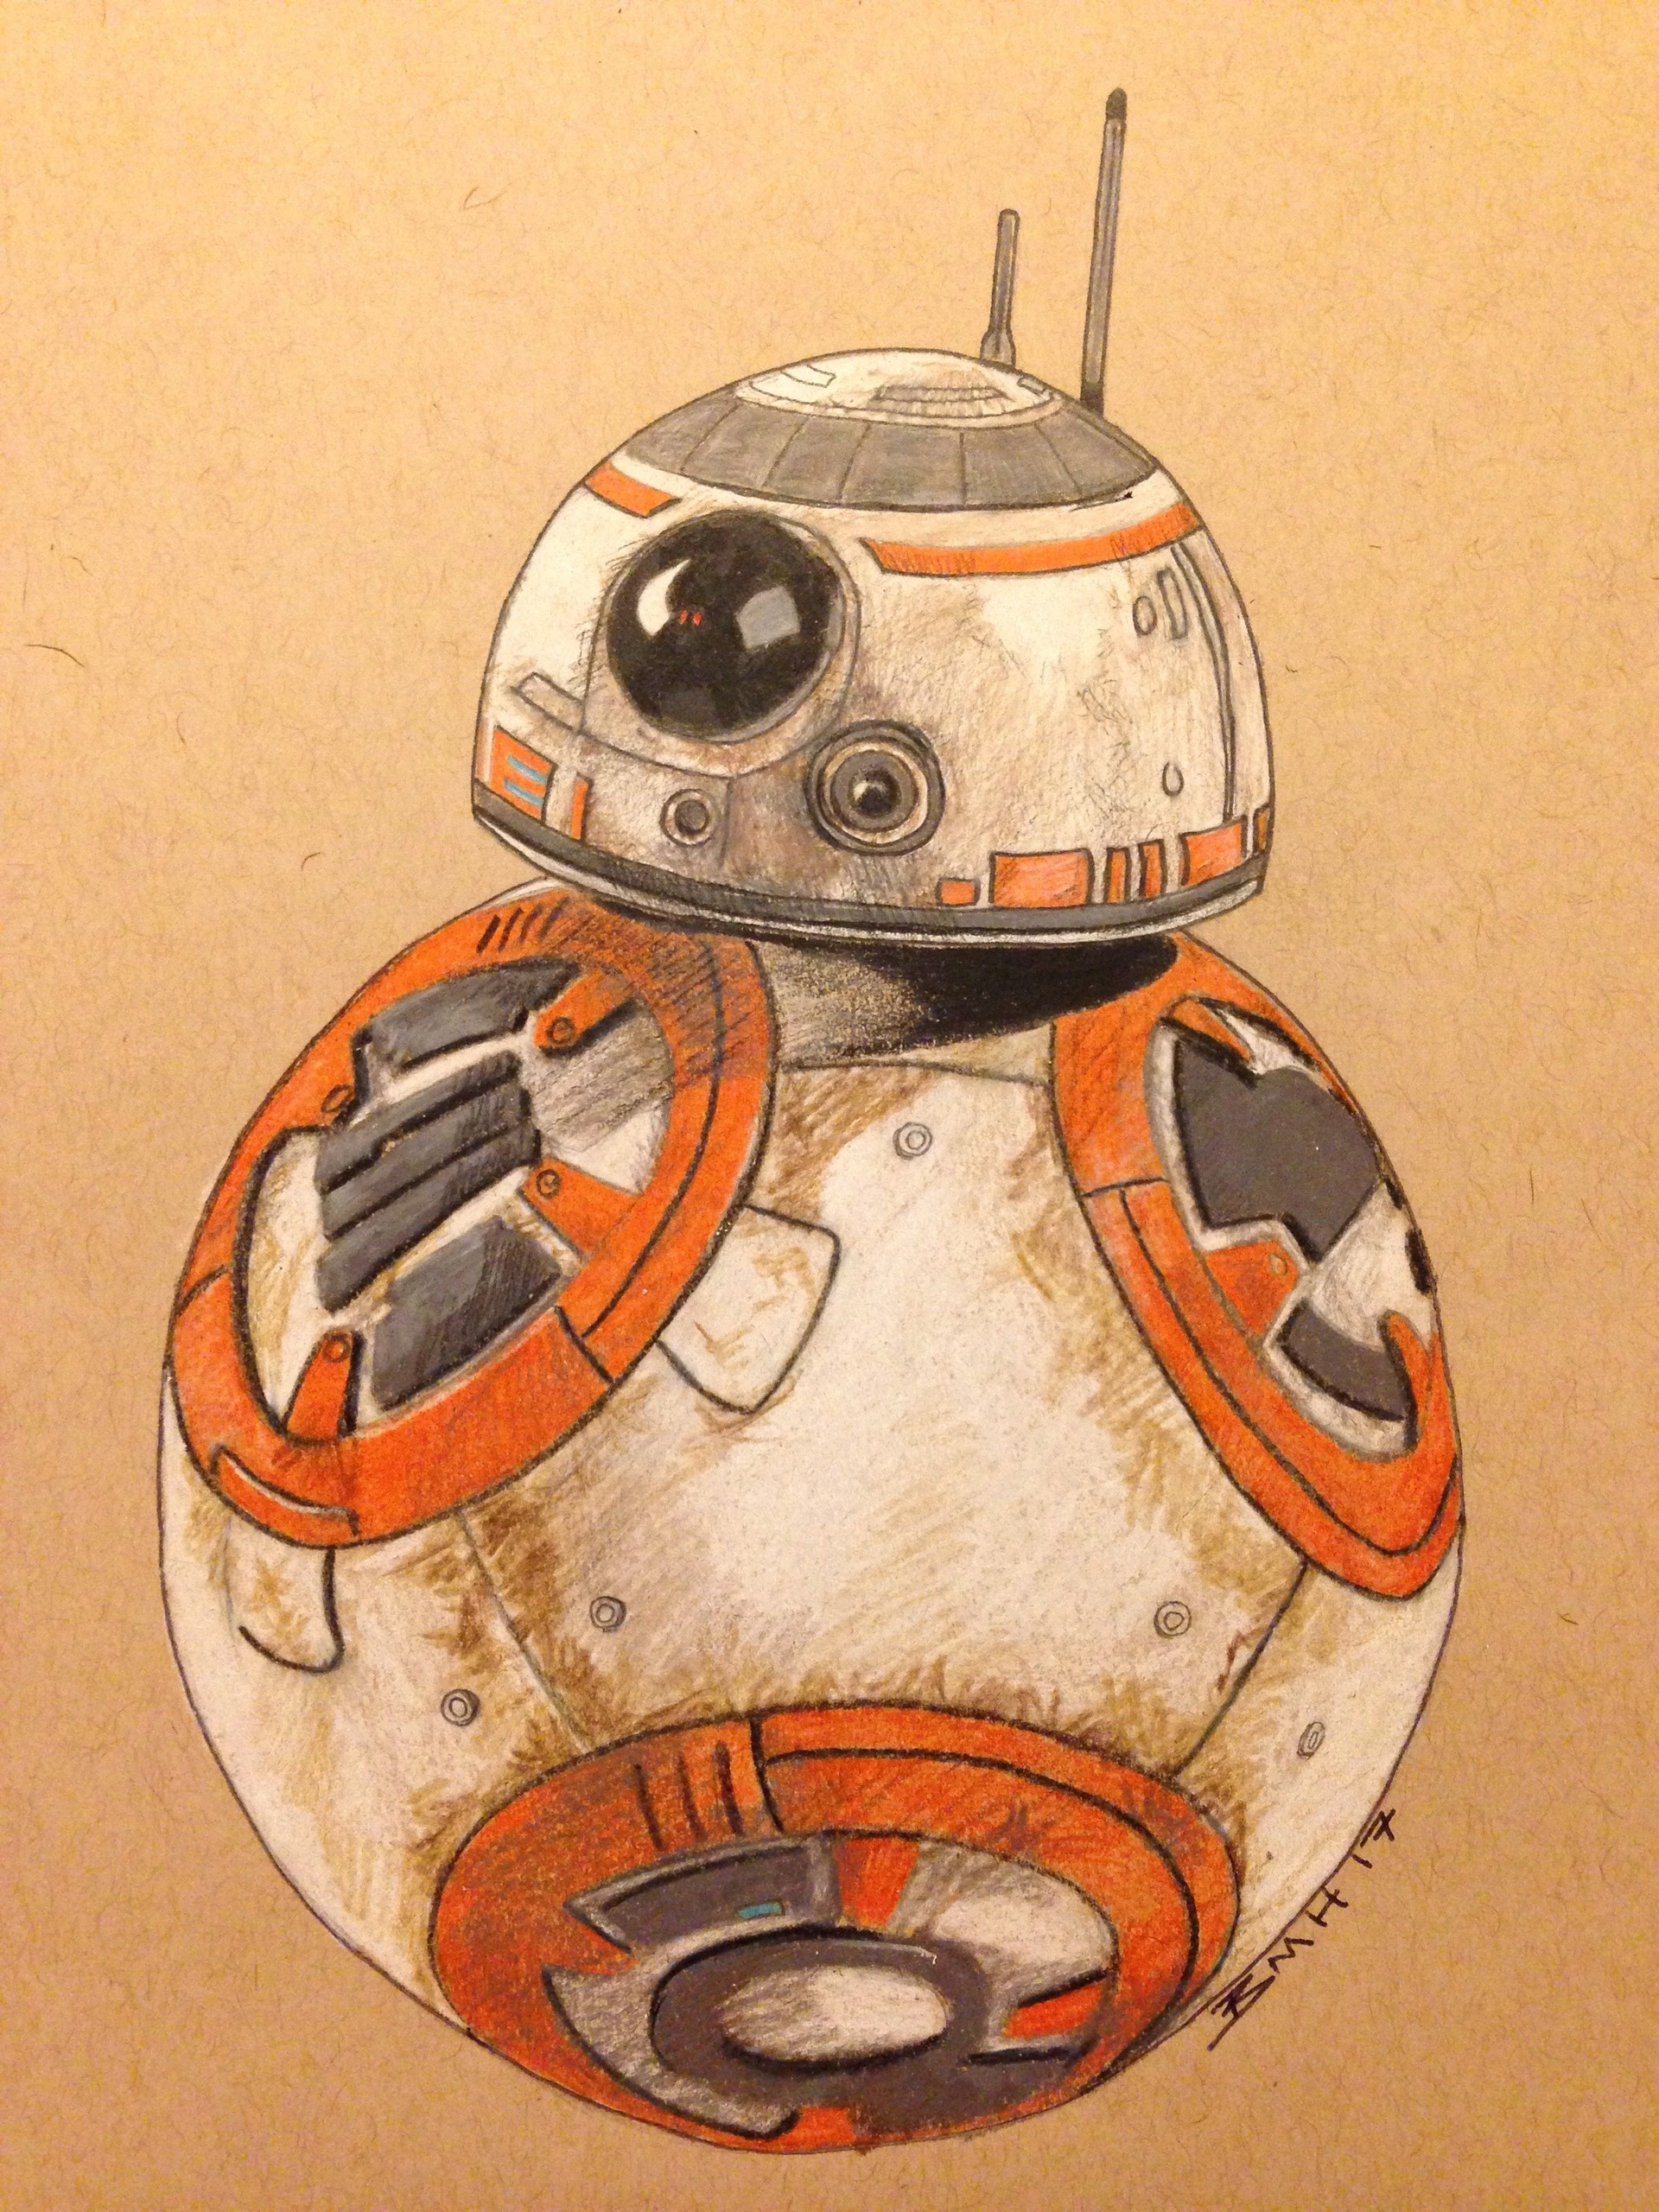 Bb8 Drawing : drawing, Bryan, Hoover, Drawing